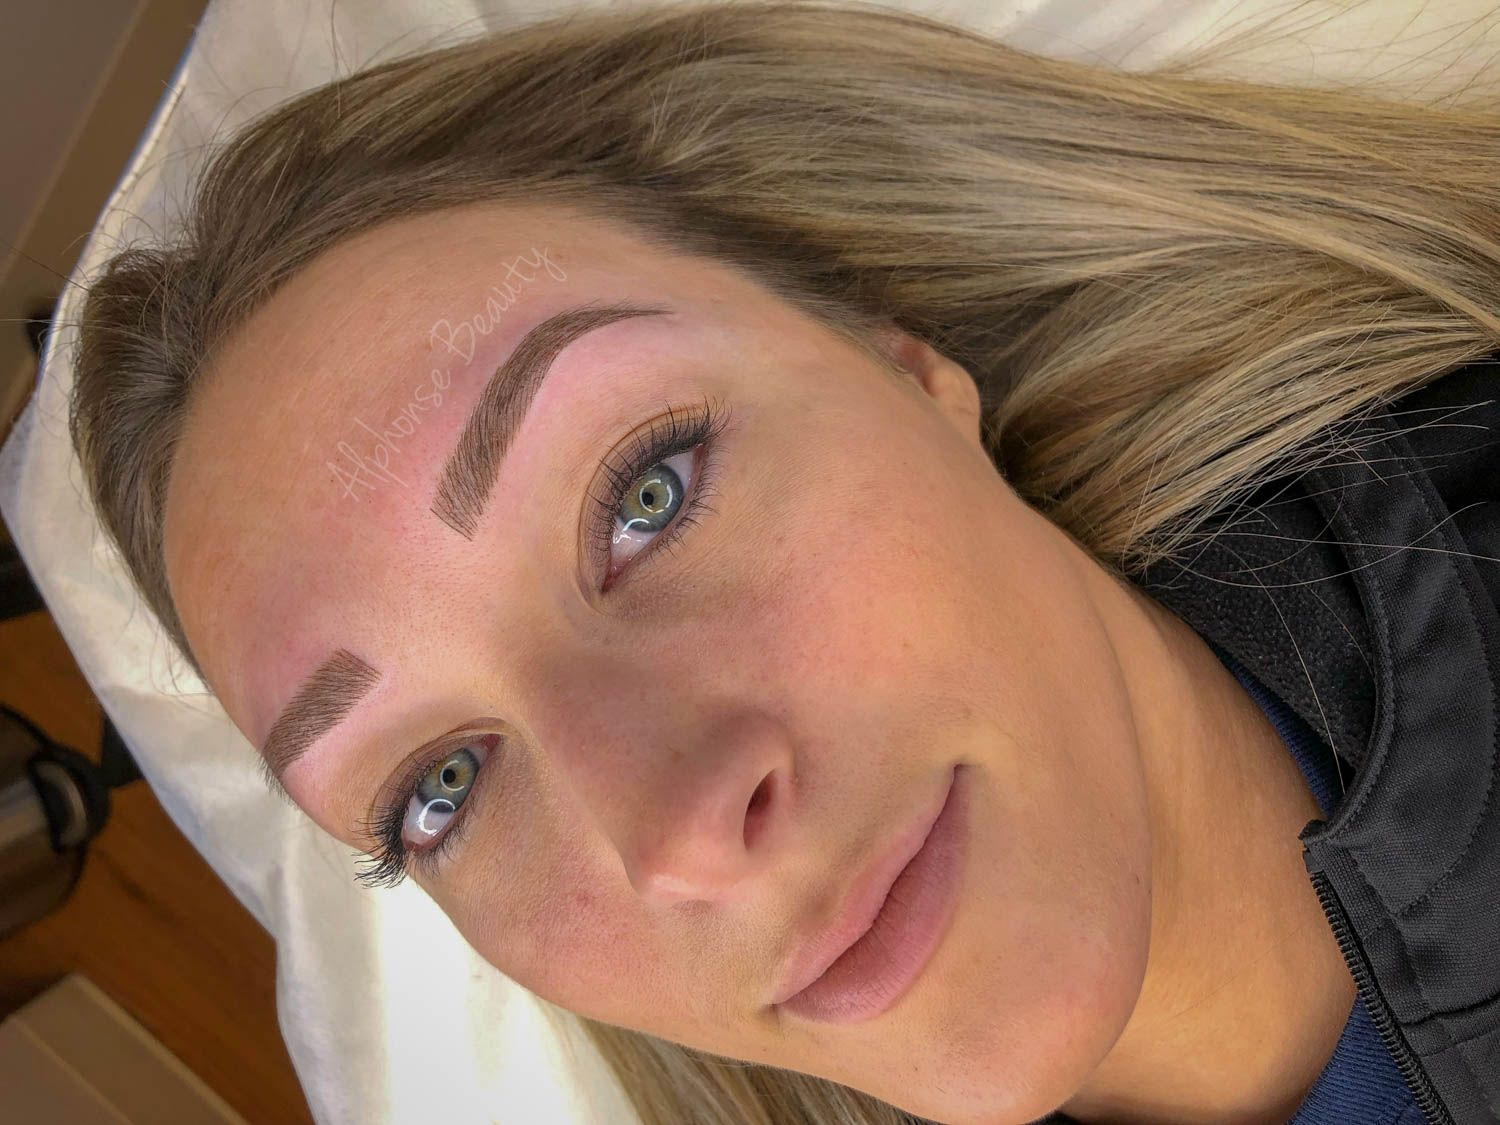 Fabulous eyebrows from microblading